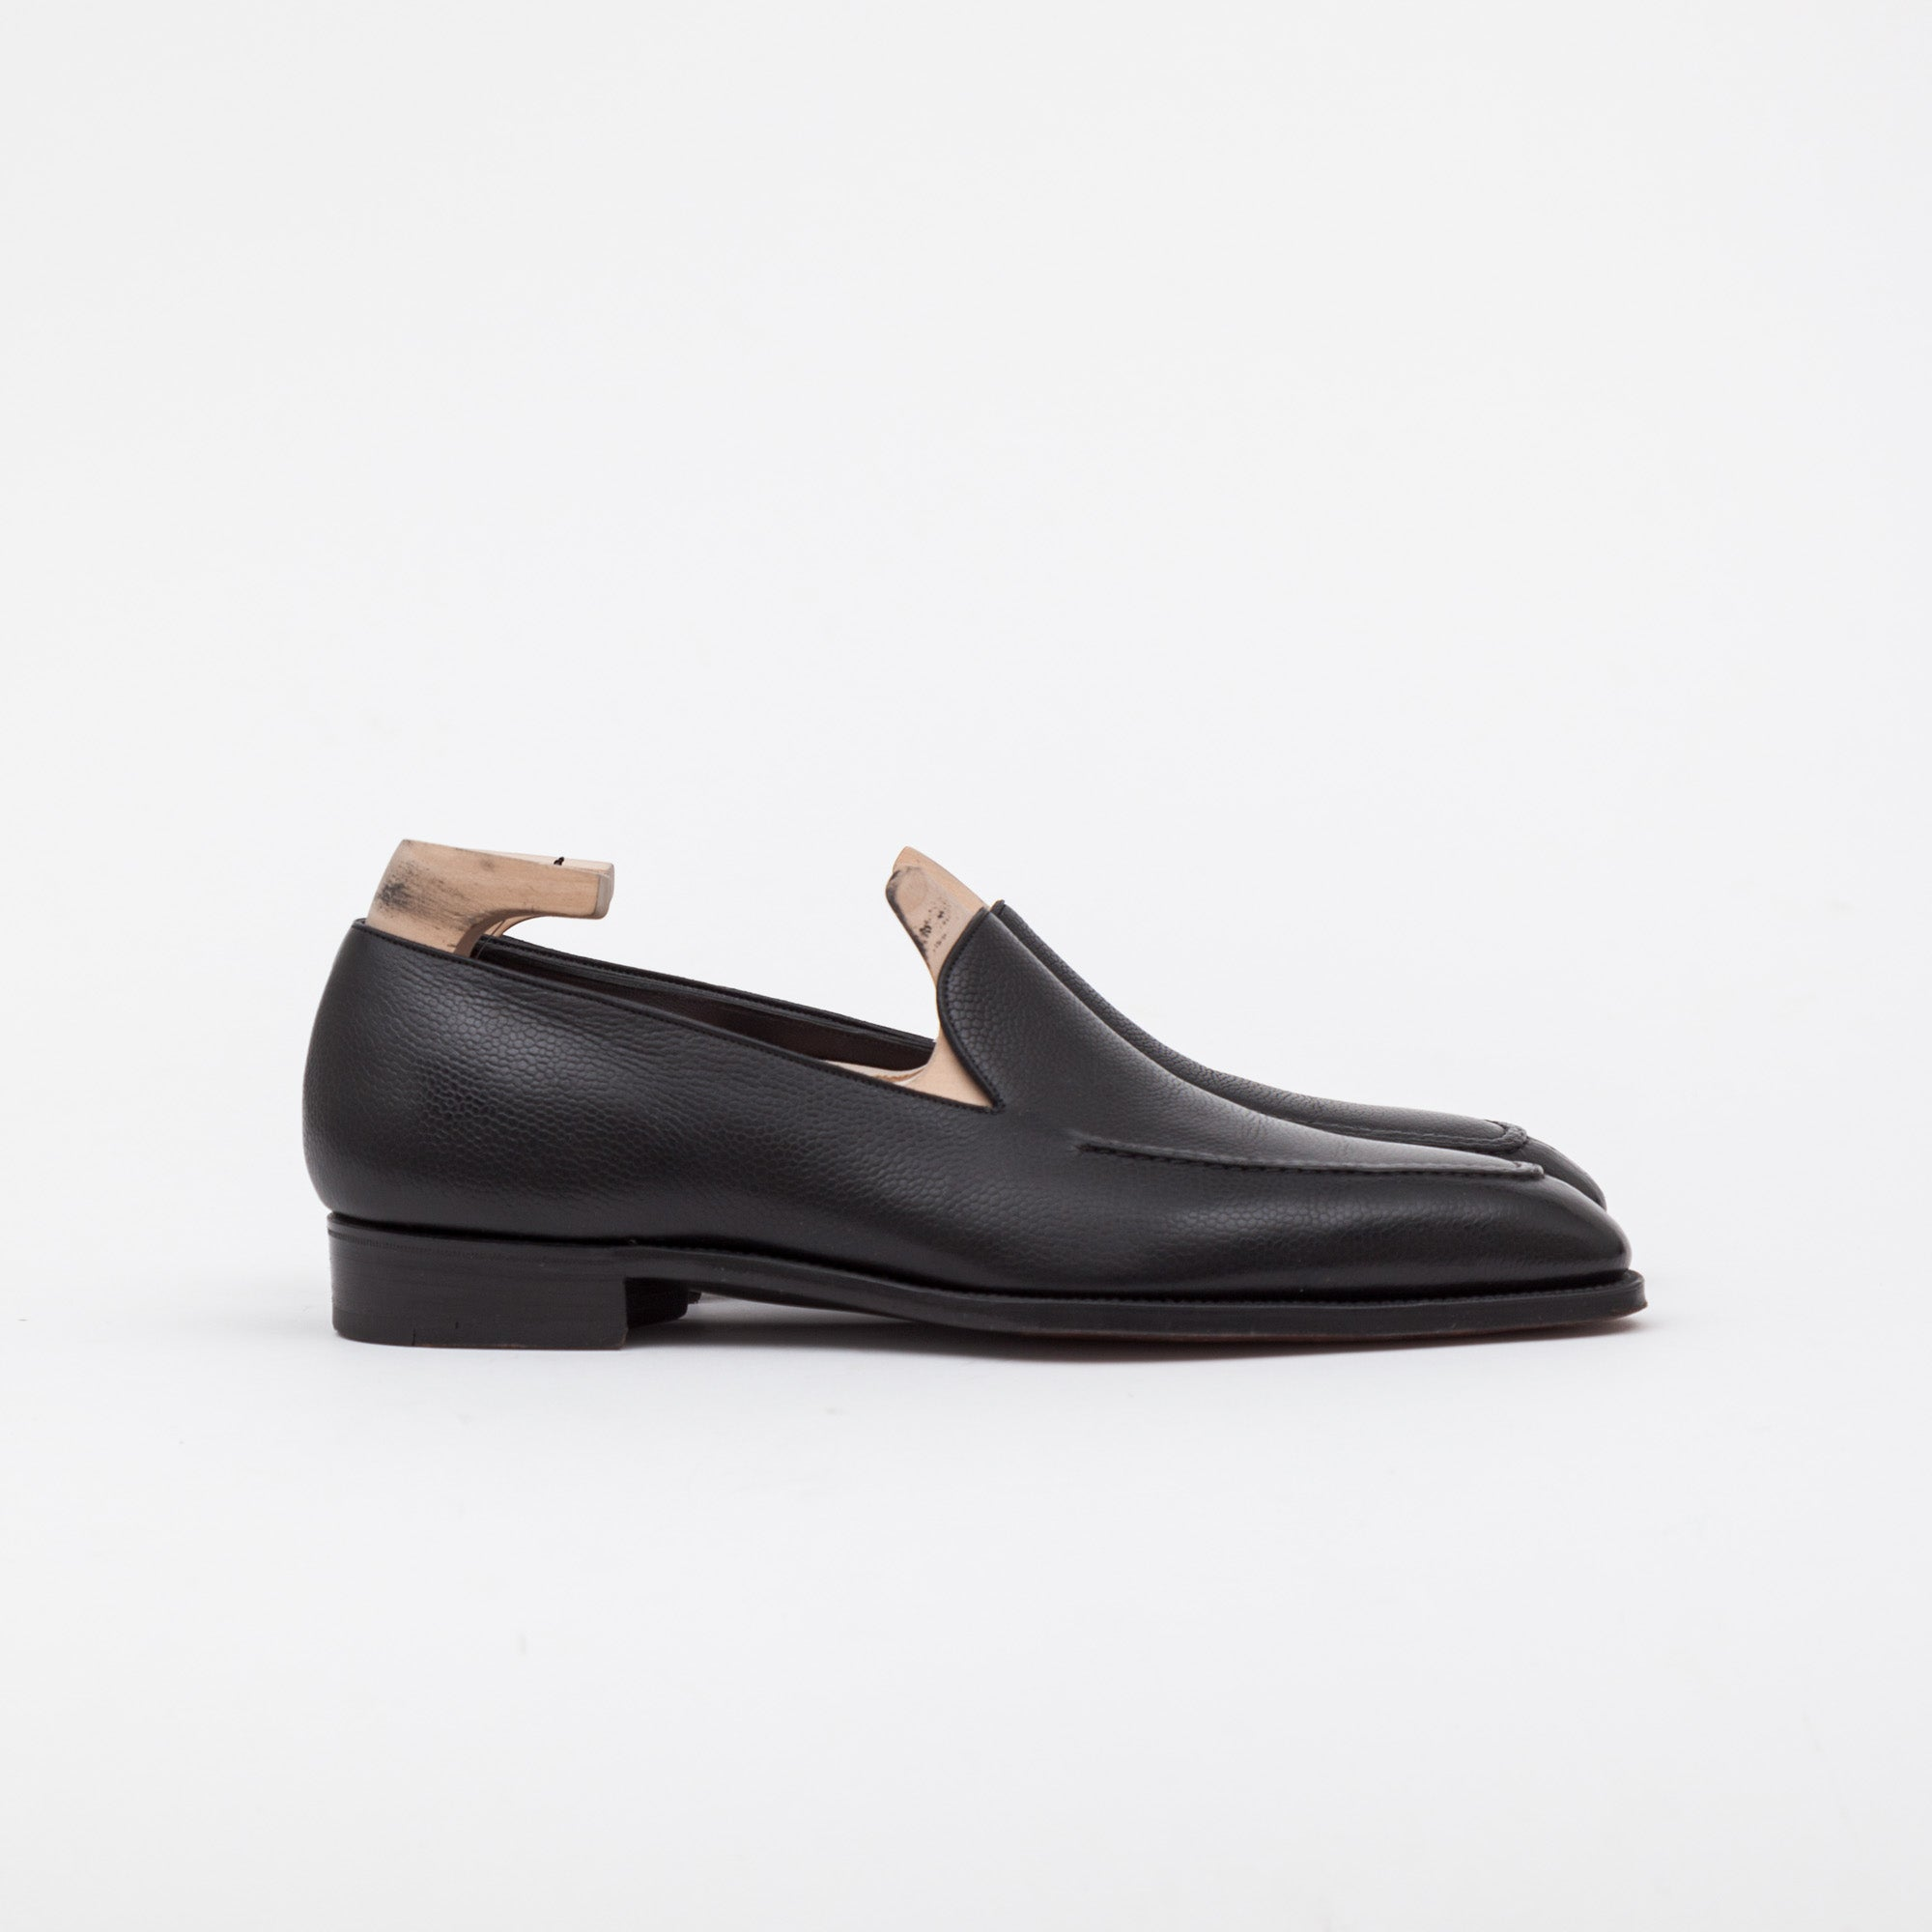 Gaziano Girling Grain Leather Amalfi Loafers